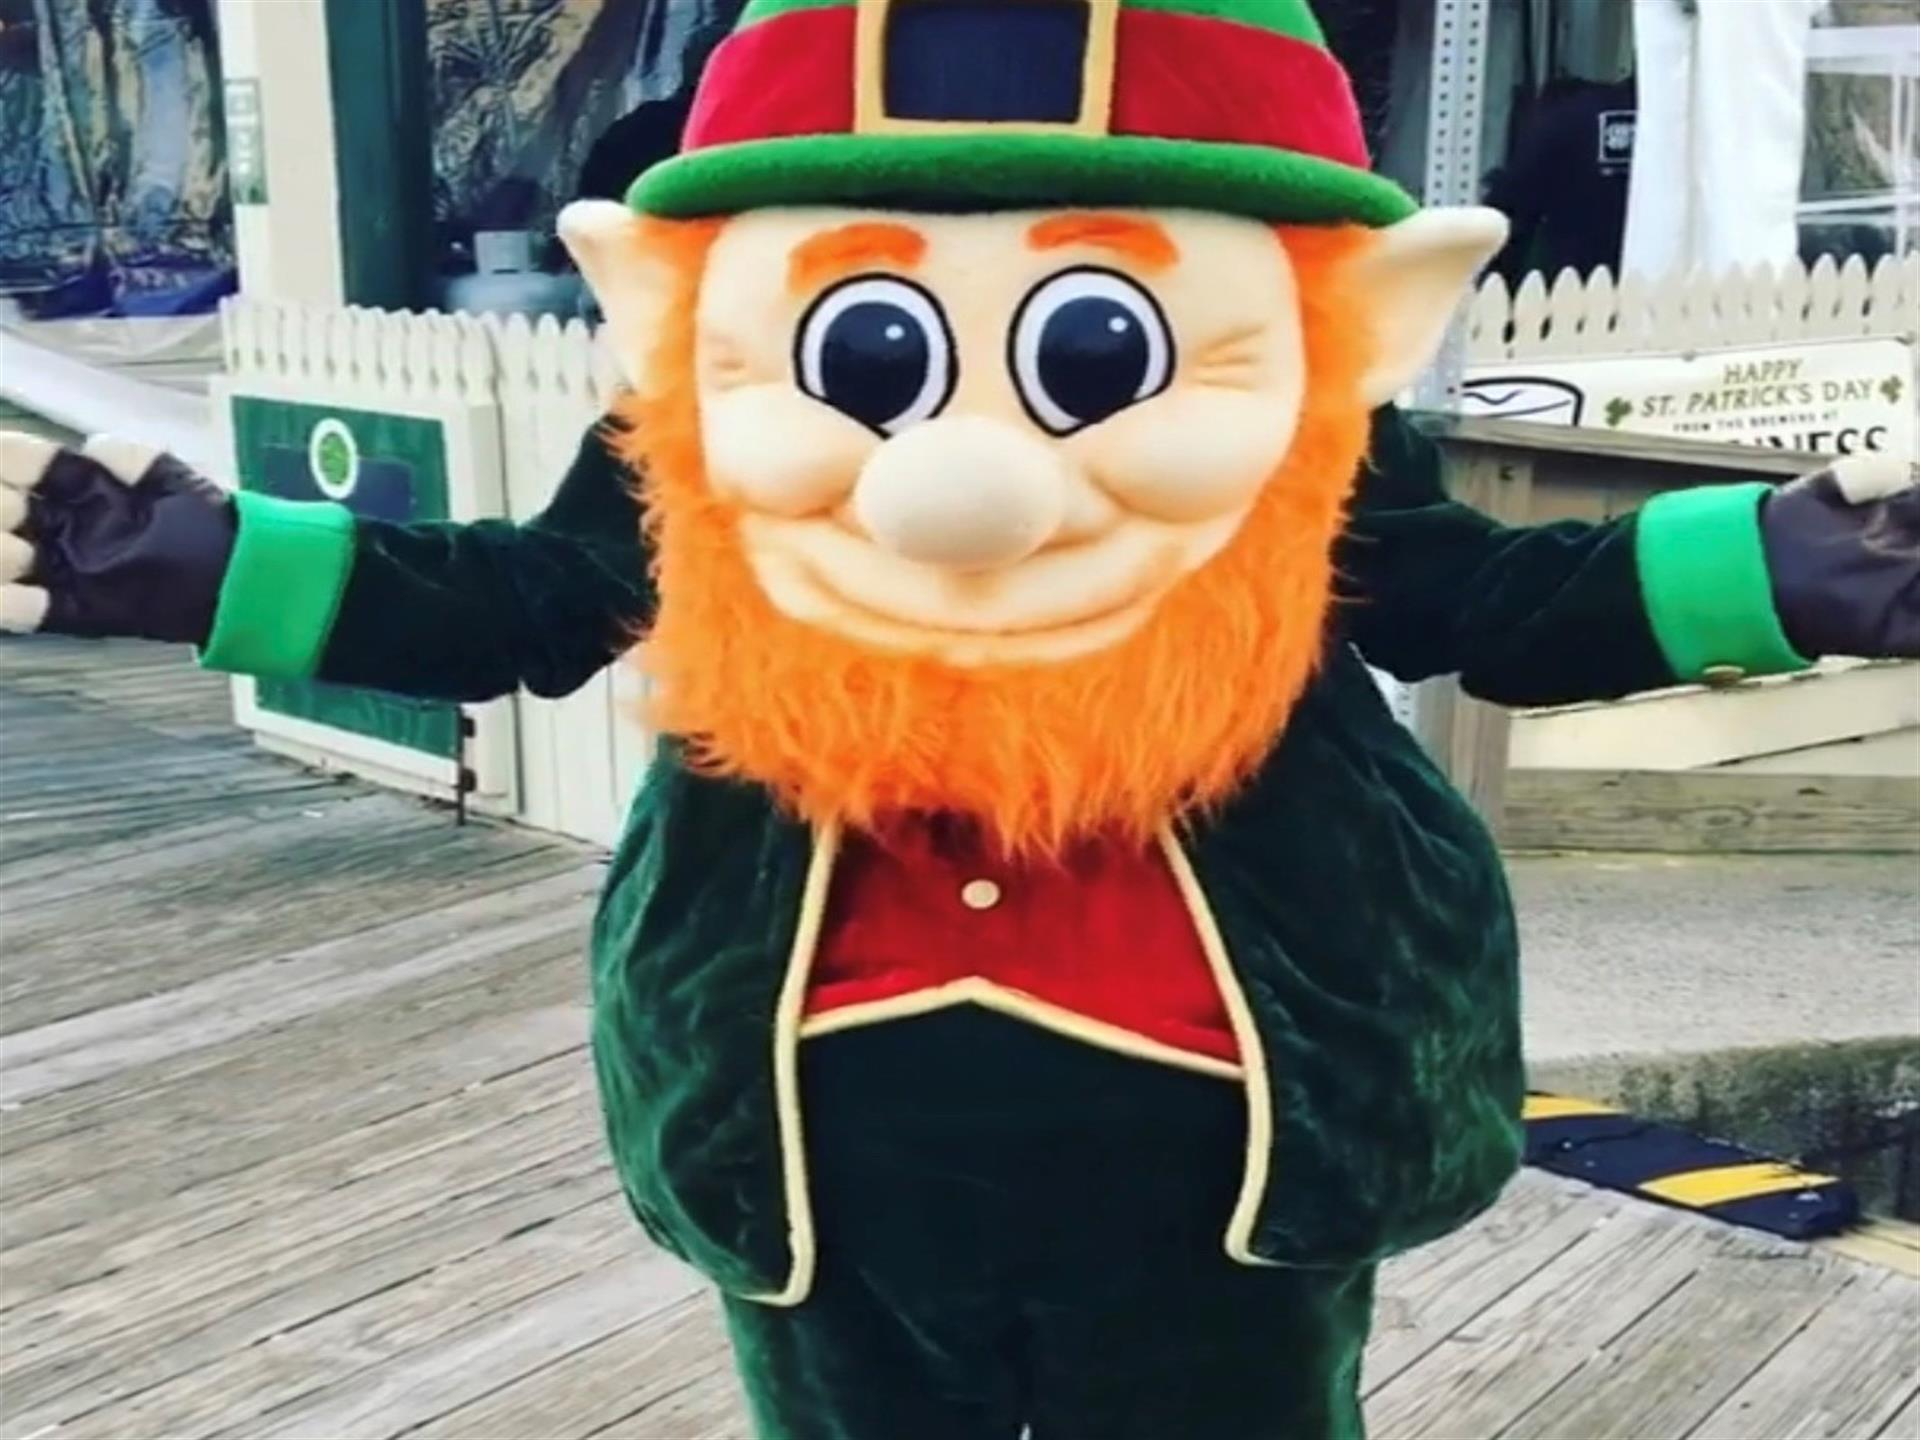 Leprechaun mascot outside on the boardwalk.